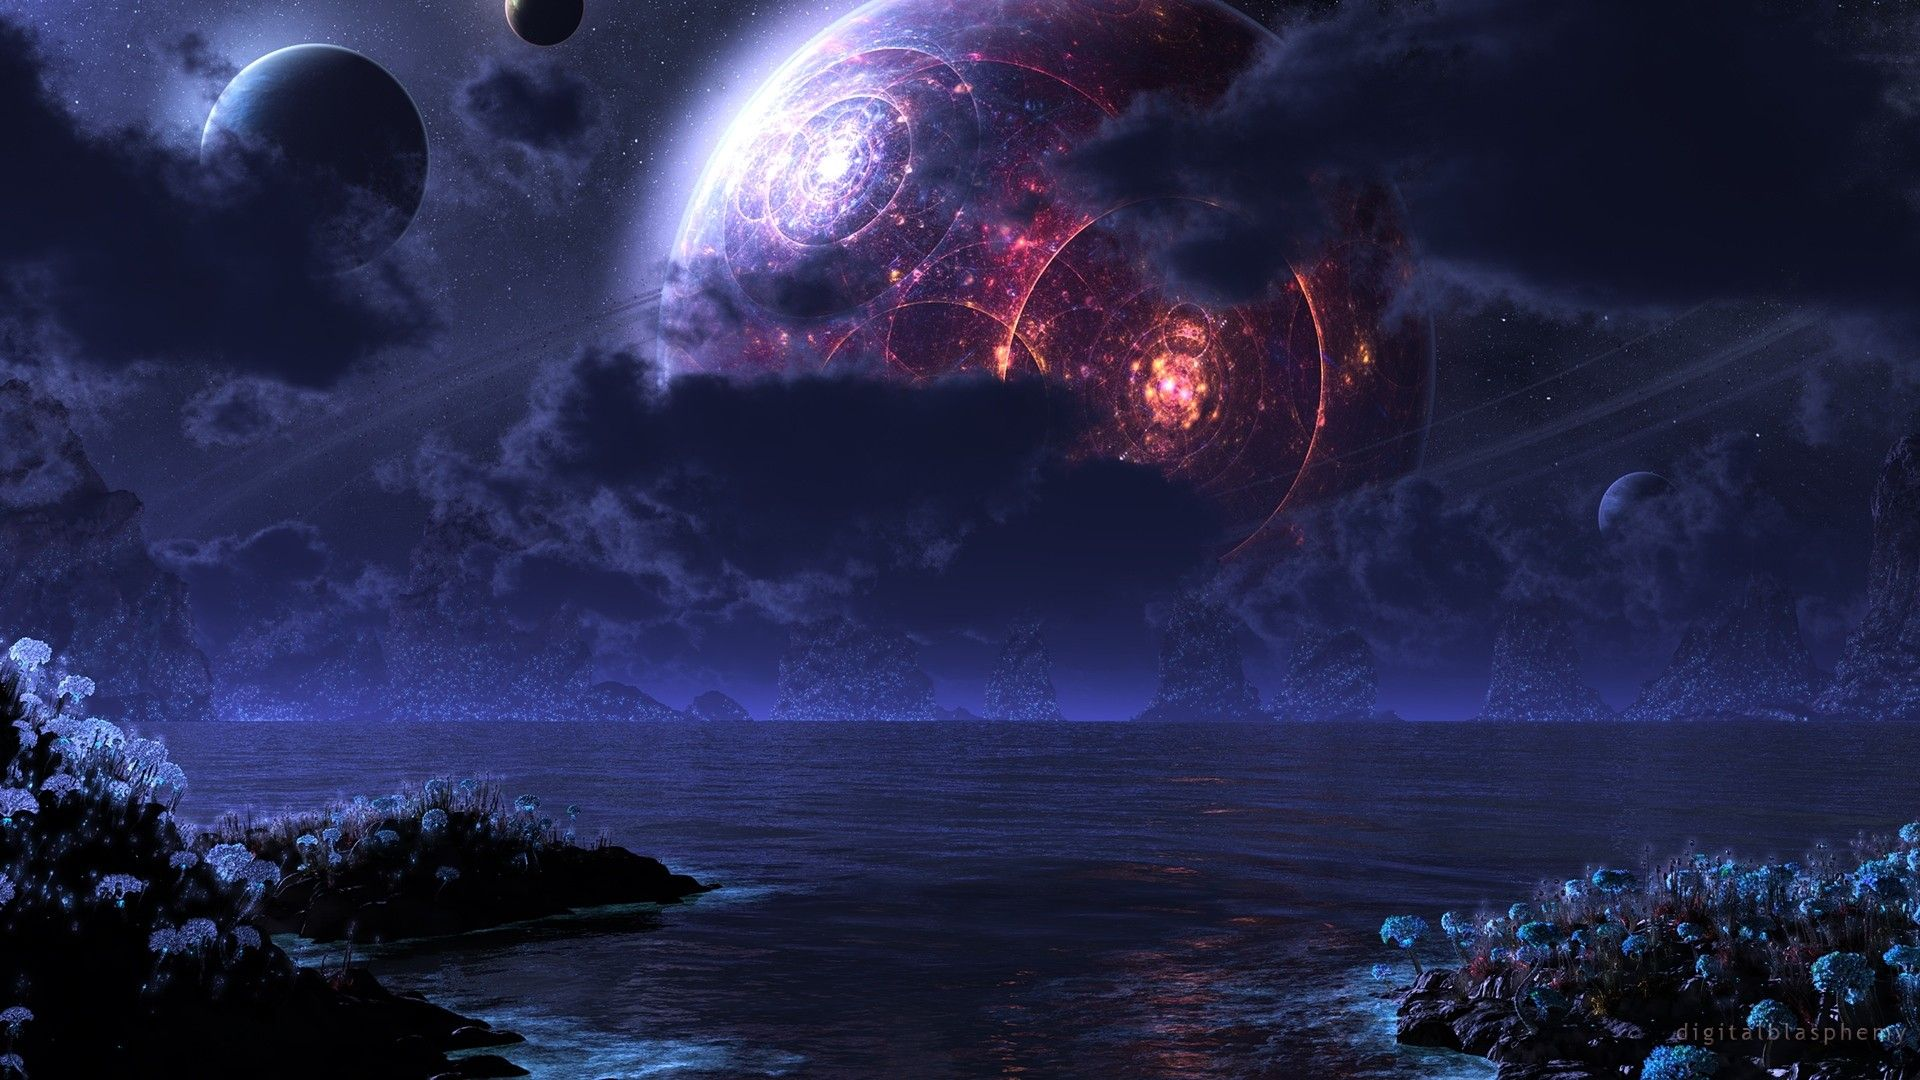 Wallpaper 2943397 Jpg 1920 1080 Fantasy Landscape Alien Worlds Space Pictures